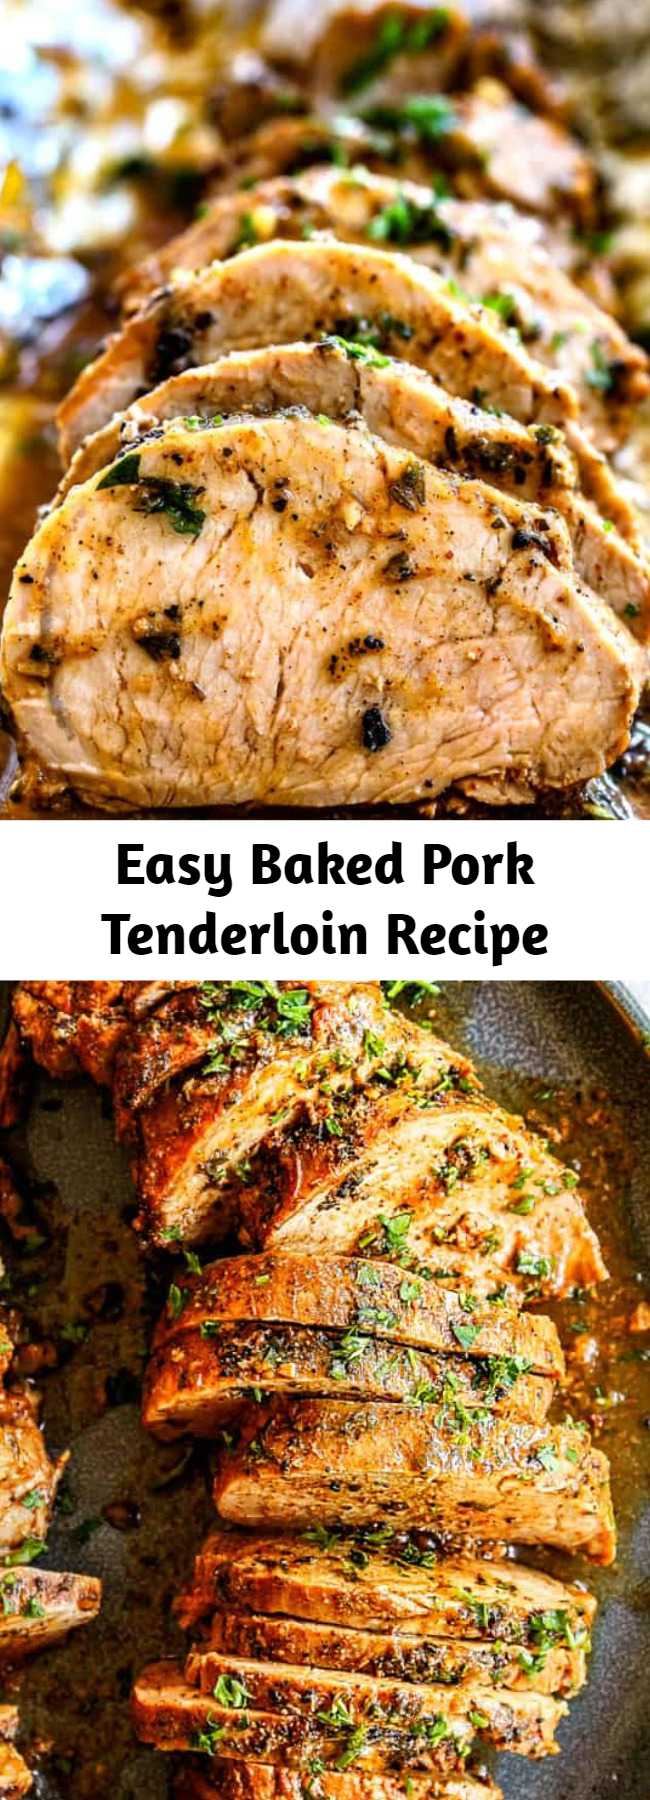 Easy Baked Pork Tenderloin Recipe - This Best Baked Pork Tenderloin recipe is outrageously juicy, bursting with flavor and so easy! It is melt-in-your-mouth-tender and dripping with tantalizing self-basting herb butter. #pork #porkrecipes #porktenderloin #dinner #recipes #dinnerrecipes #dinnerideas #dinnertime #easydinner #easydinnerrecipes #easterrecipes #easter